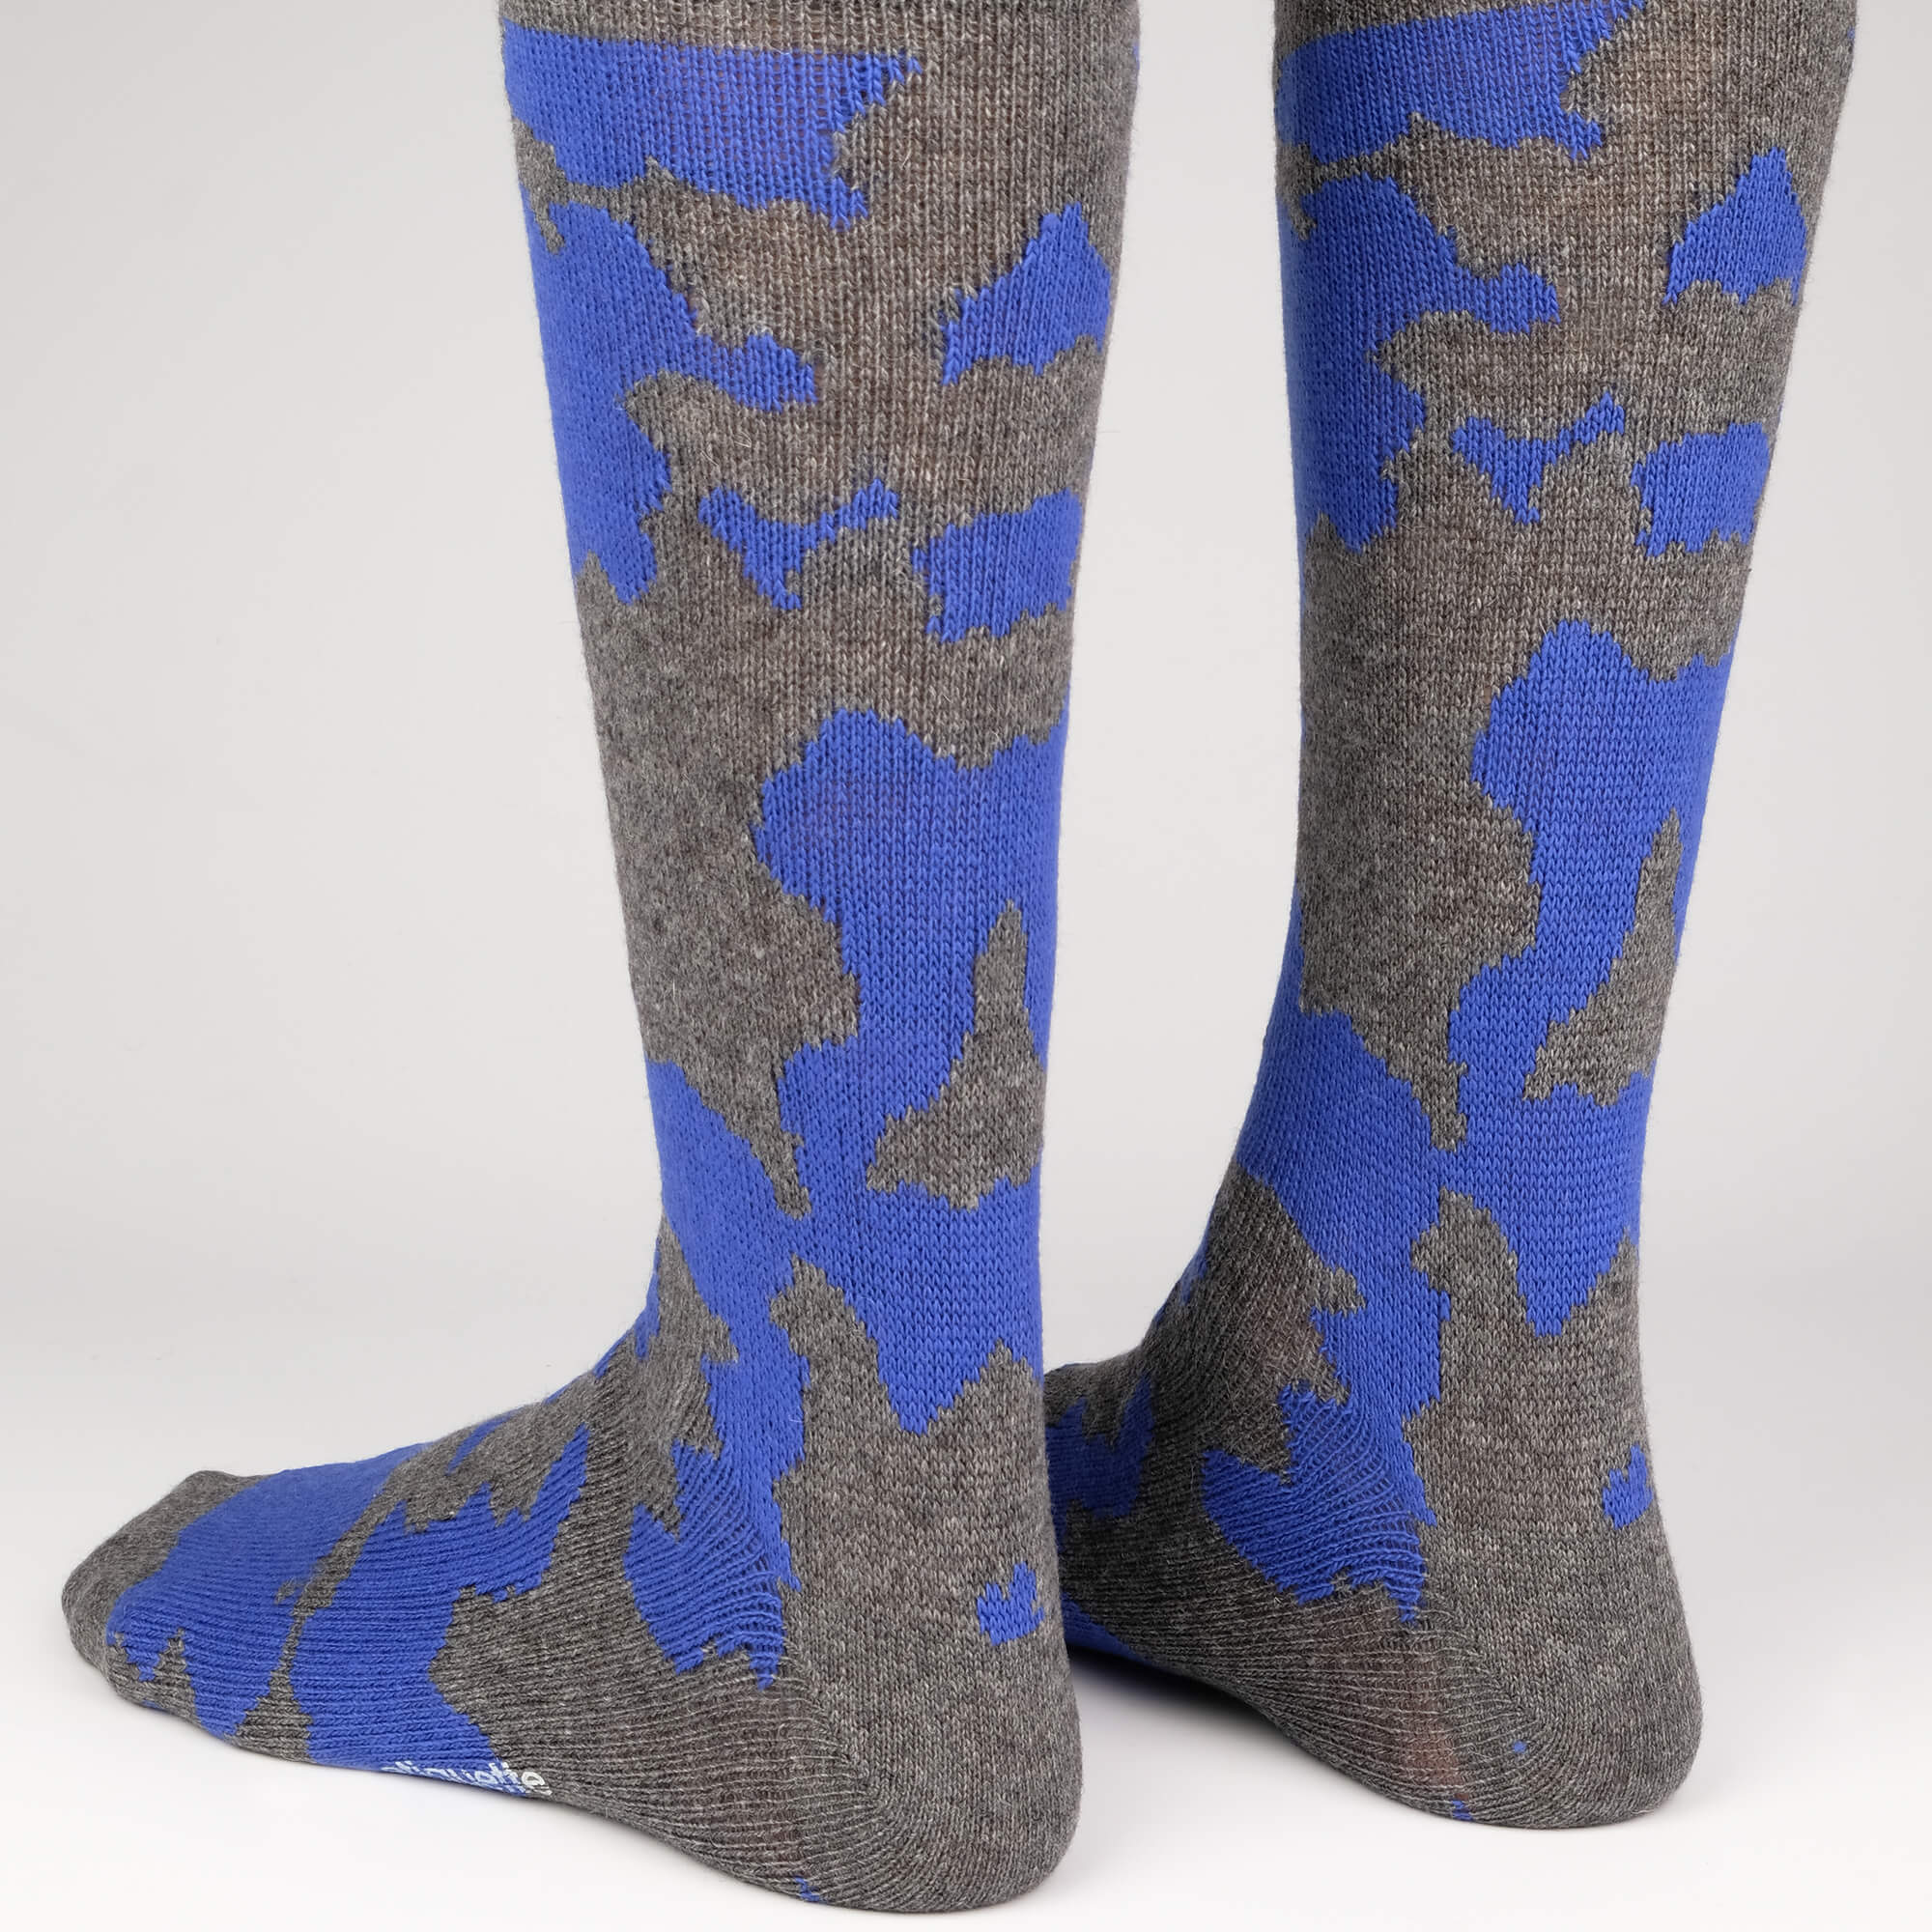 Mens Socks - Camouflage Cashmere Men's Socks Gift Box - Multi⎪Etiquette Clothiers